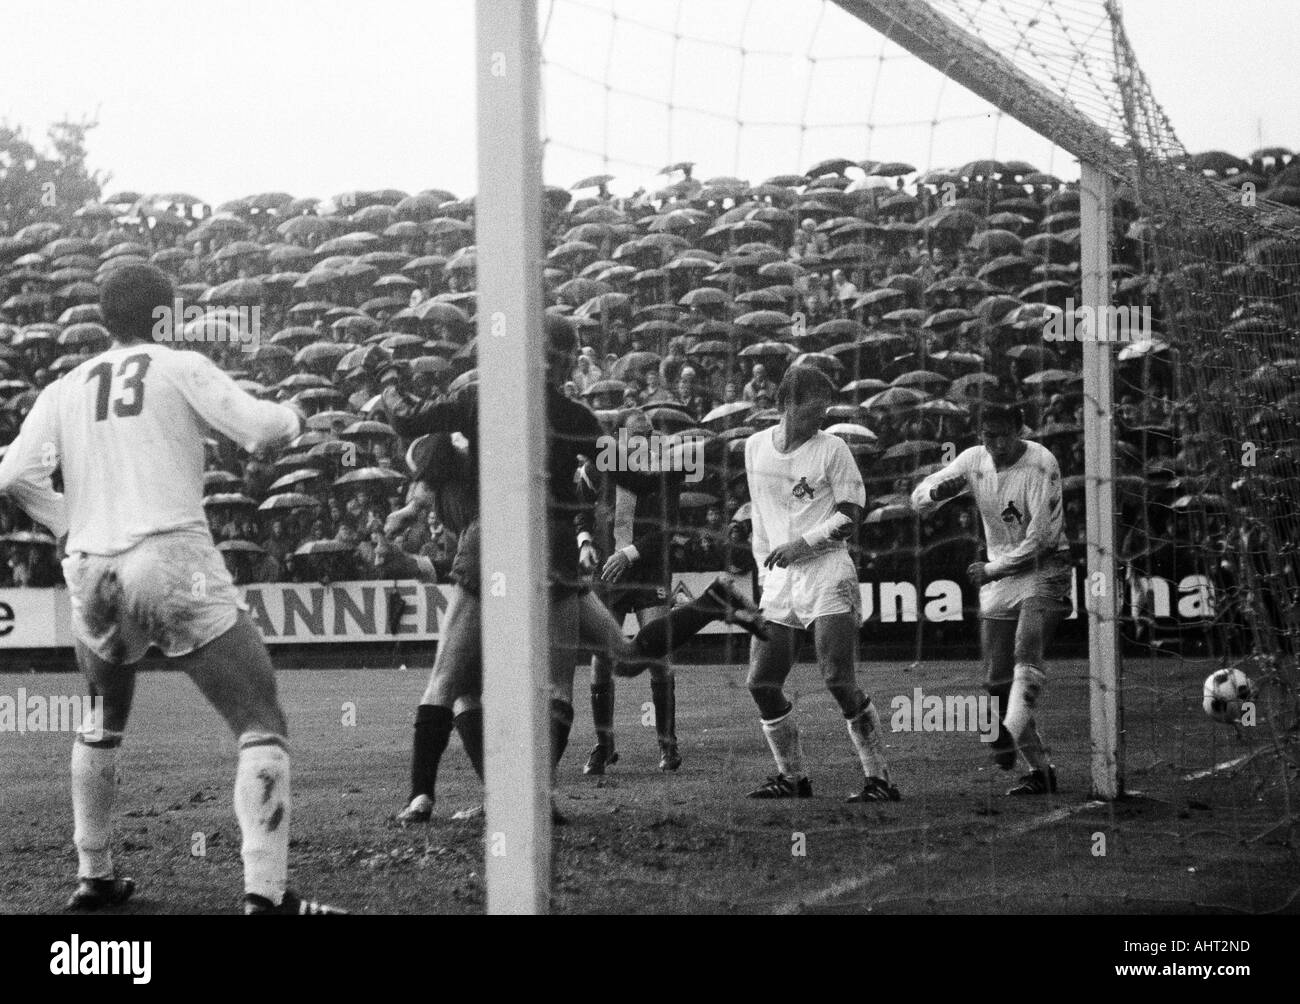 football, Bundesliga, 1970/1971, Boekelberg Stadium, Borussia Moenchengladbach versus 1. FC Cologne 1:1, game took place in constant rain, visitors and football fans with umbrellas, scene of the match, f.l.t.r. Thomas Parits (Koeln), keeper Manfred Mangli - Stock Image